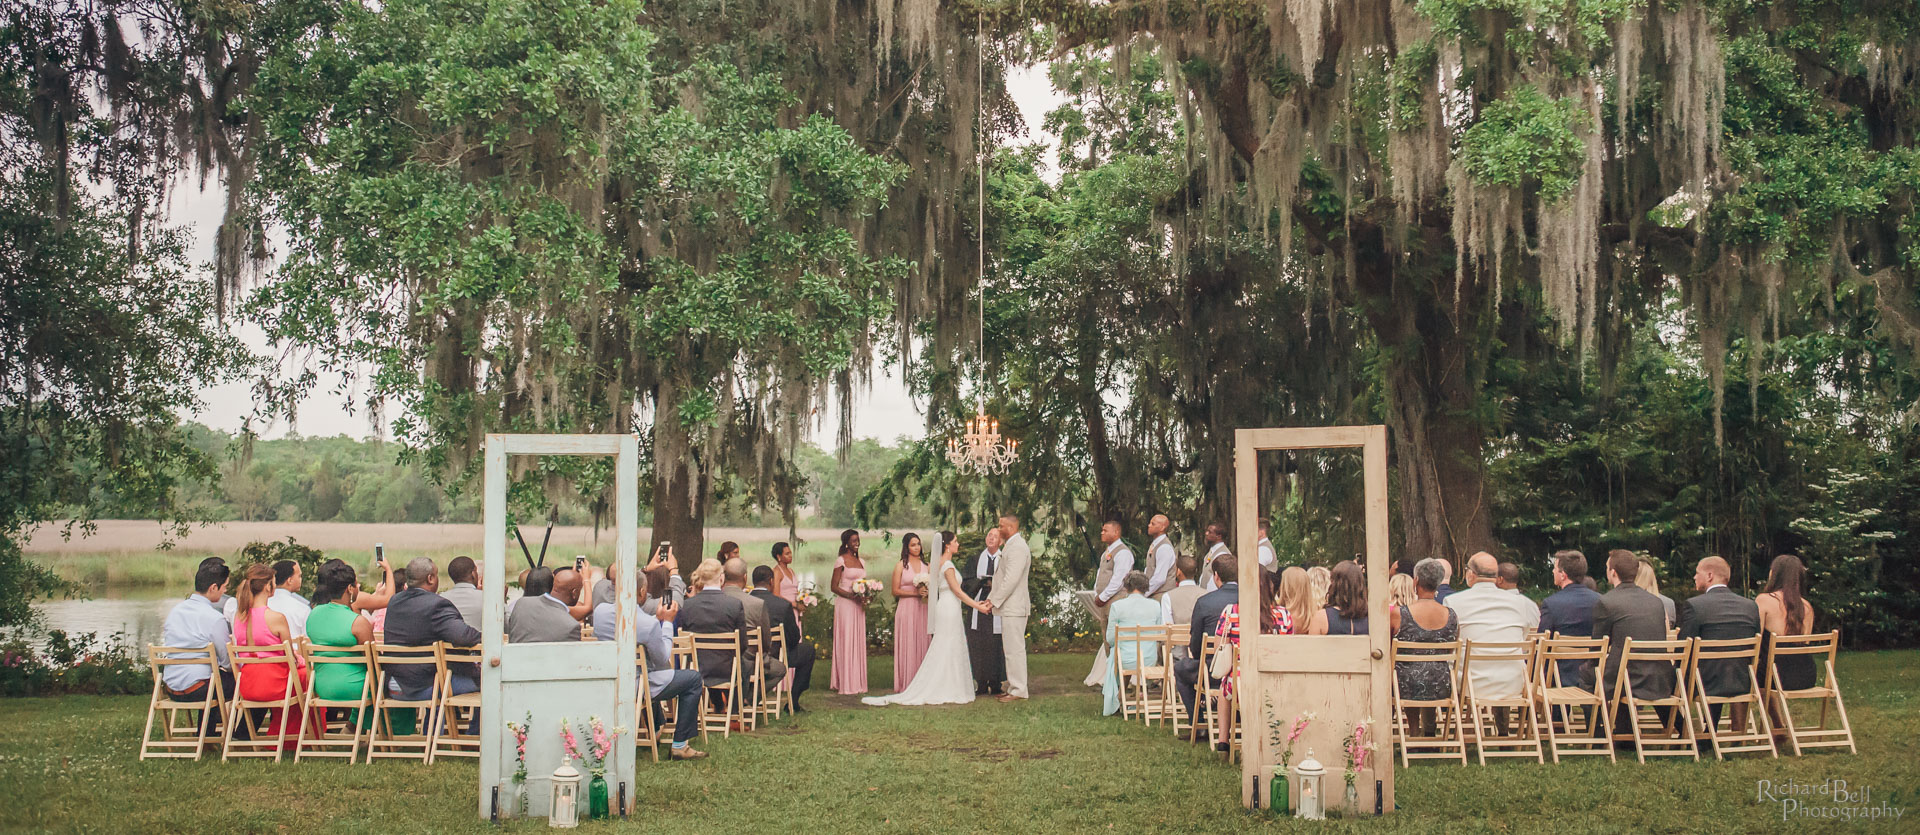 Magnolia Plantation Carriage House Ceremony